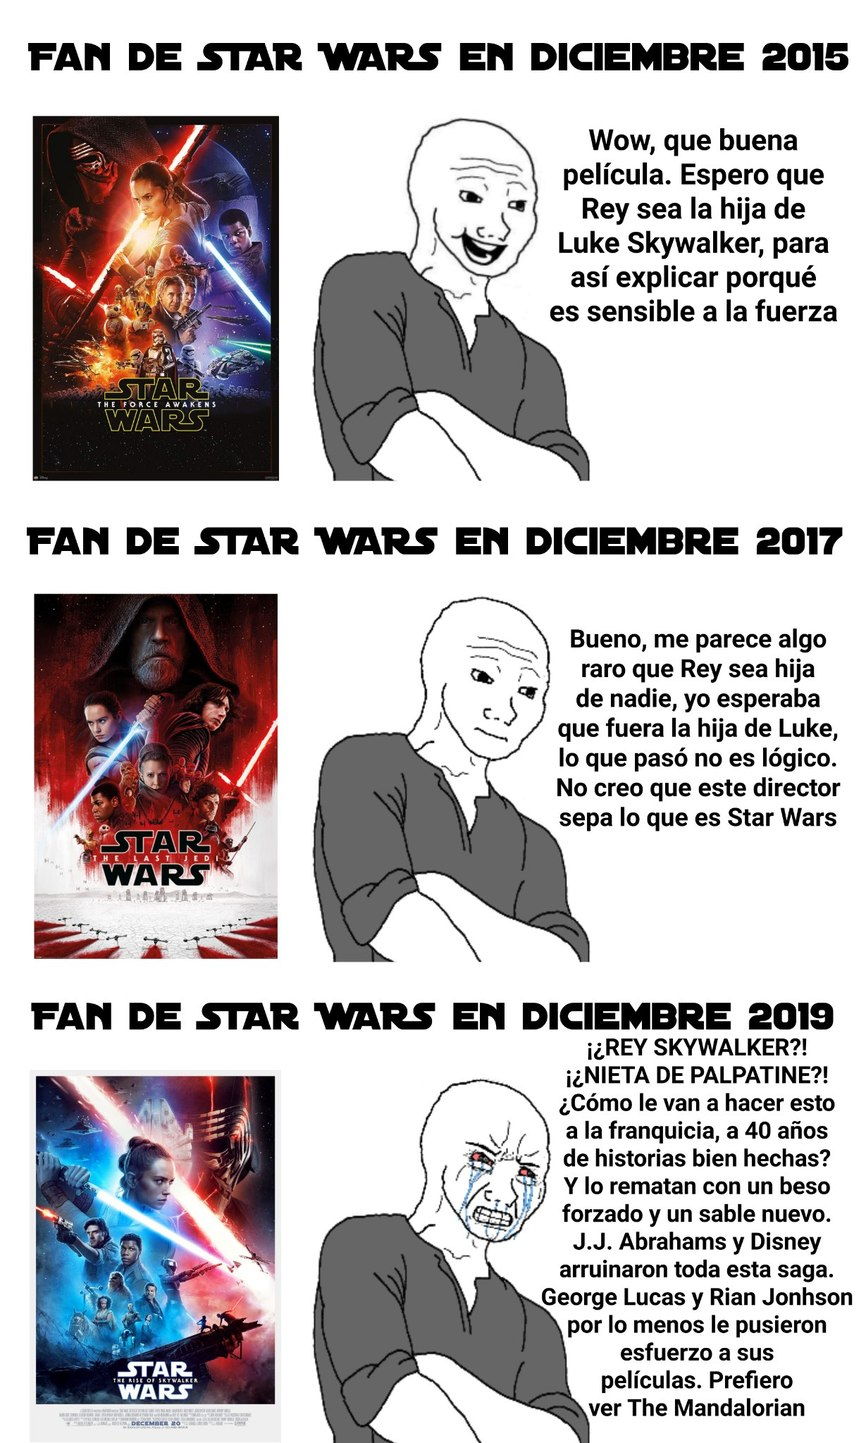 Star Wars murió - meme